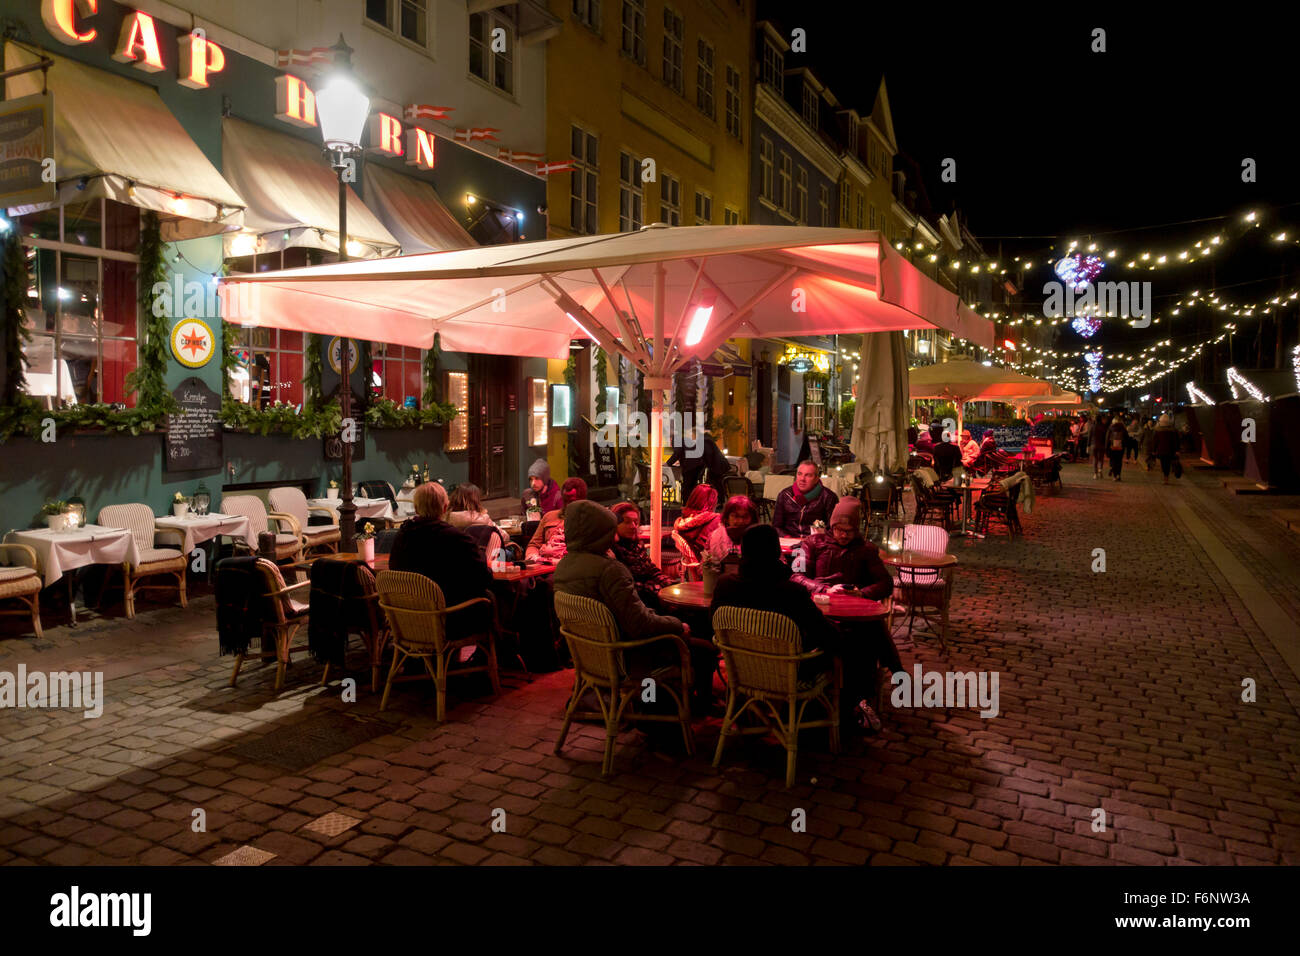 Heated outdoor serving at pavement restaurants and bars in a Christmas decorated and illuminated Nyhavn district - Stock Image